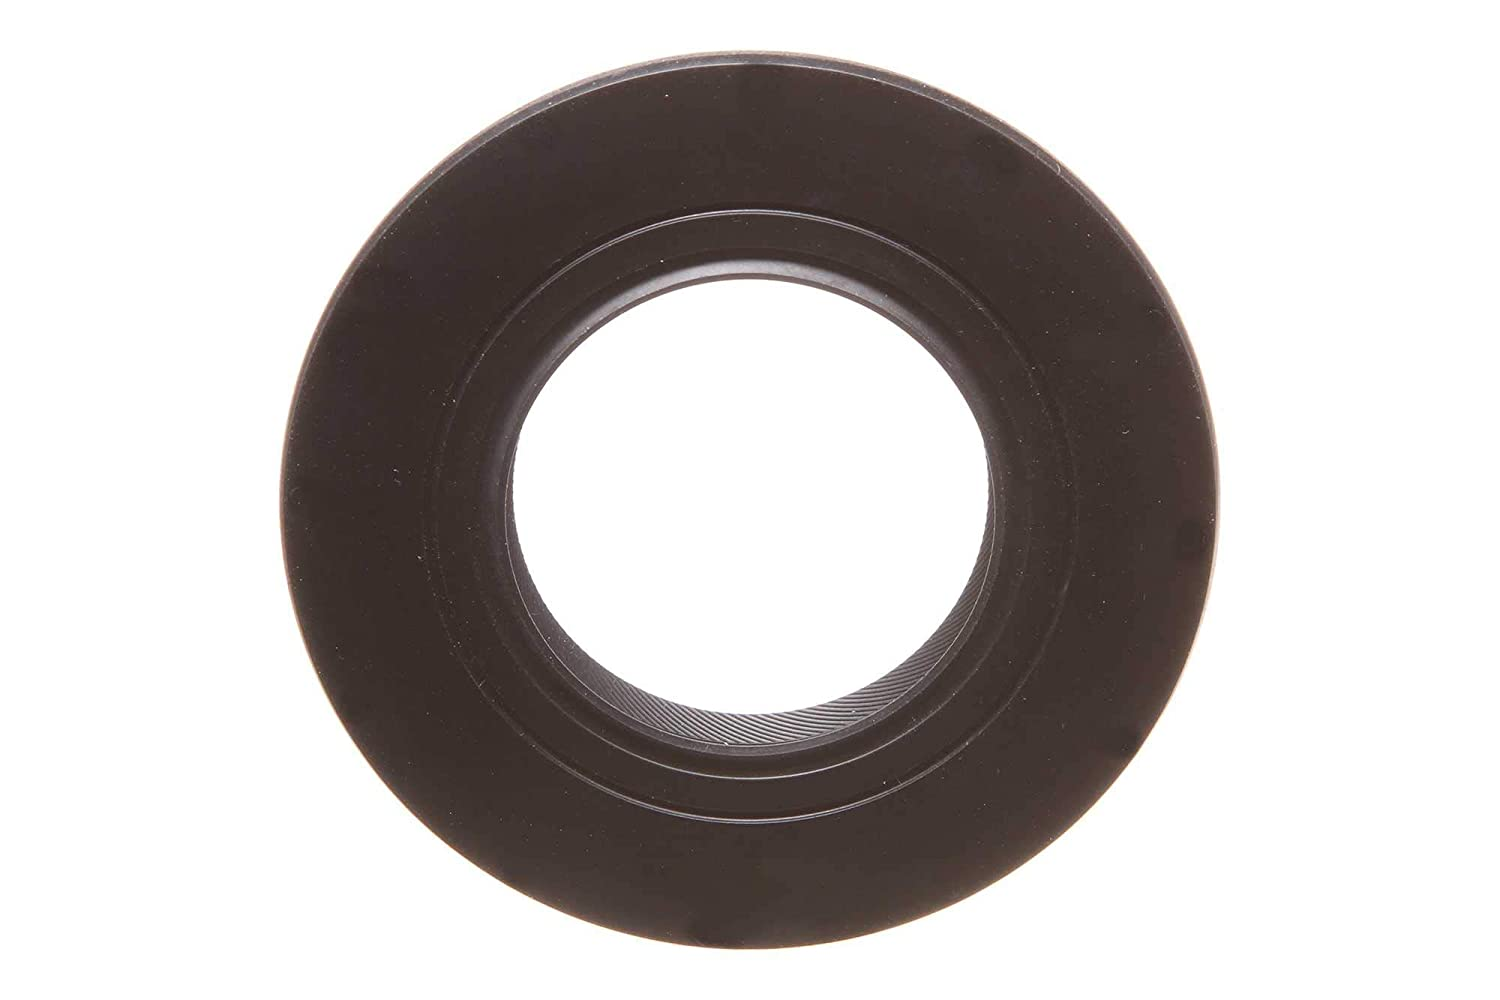 Replacement Kits Crankcase/Clutch Oil Seal Replaces 93102-35004-00 Yamaha Grizzly, Rhino & Viking